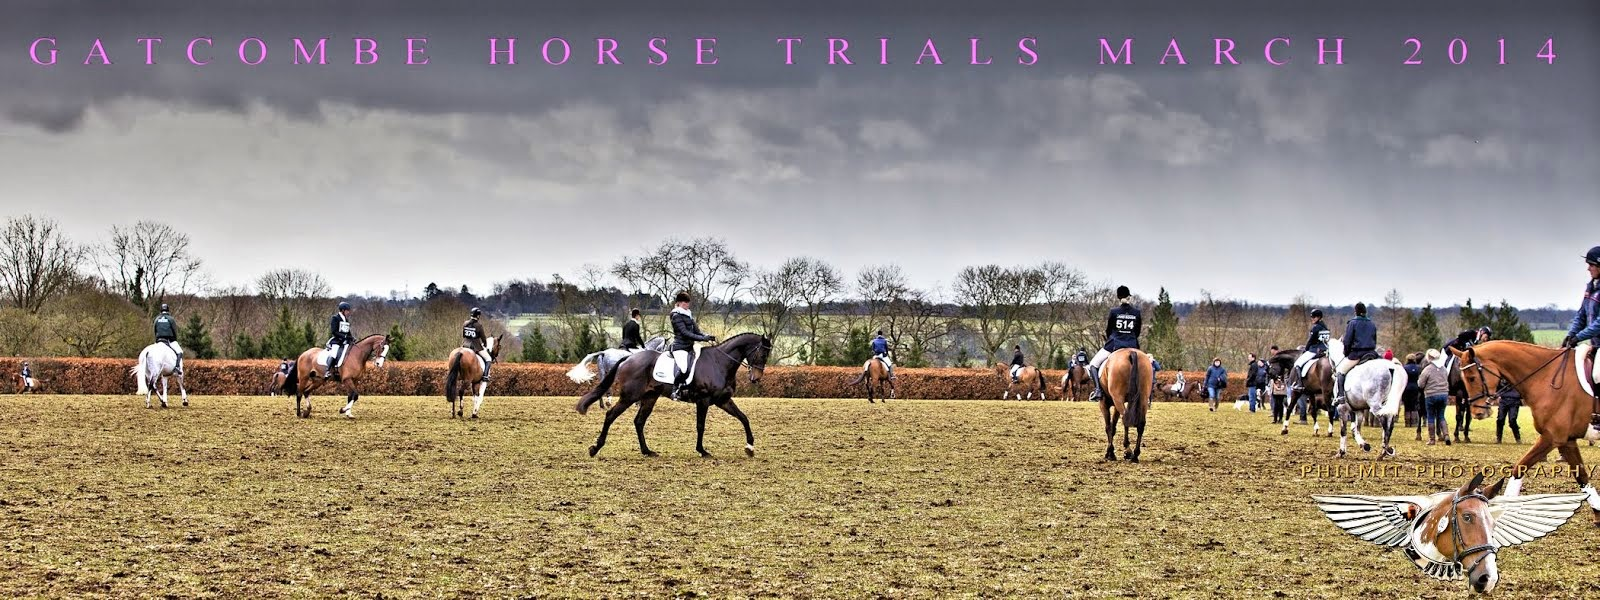 Gatcombe Autumn 2014 Trials